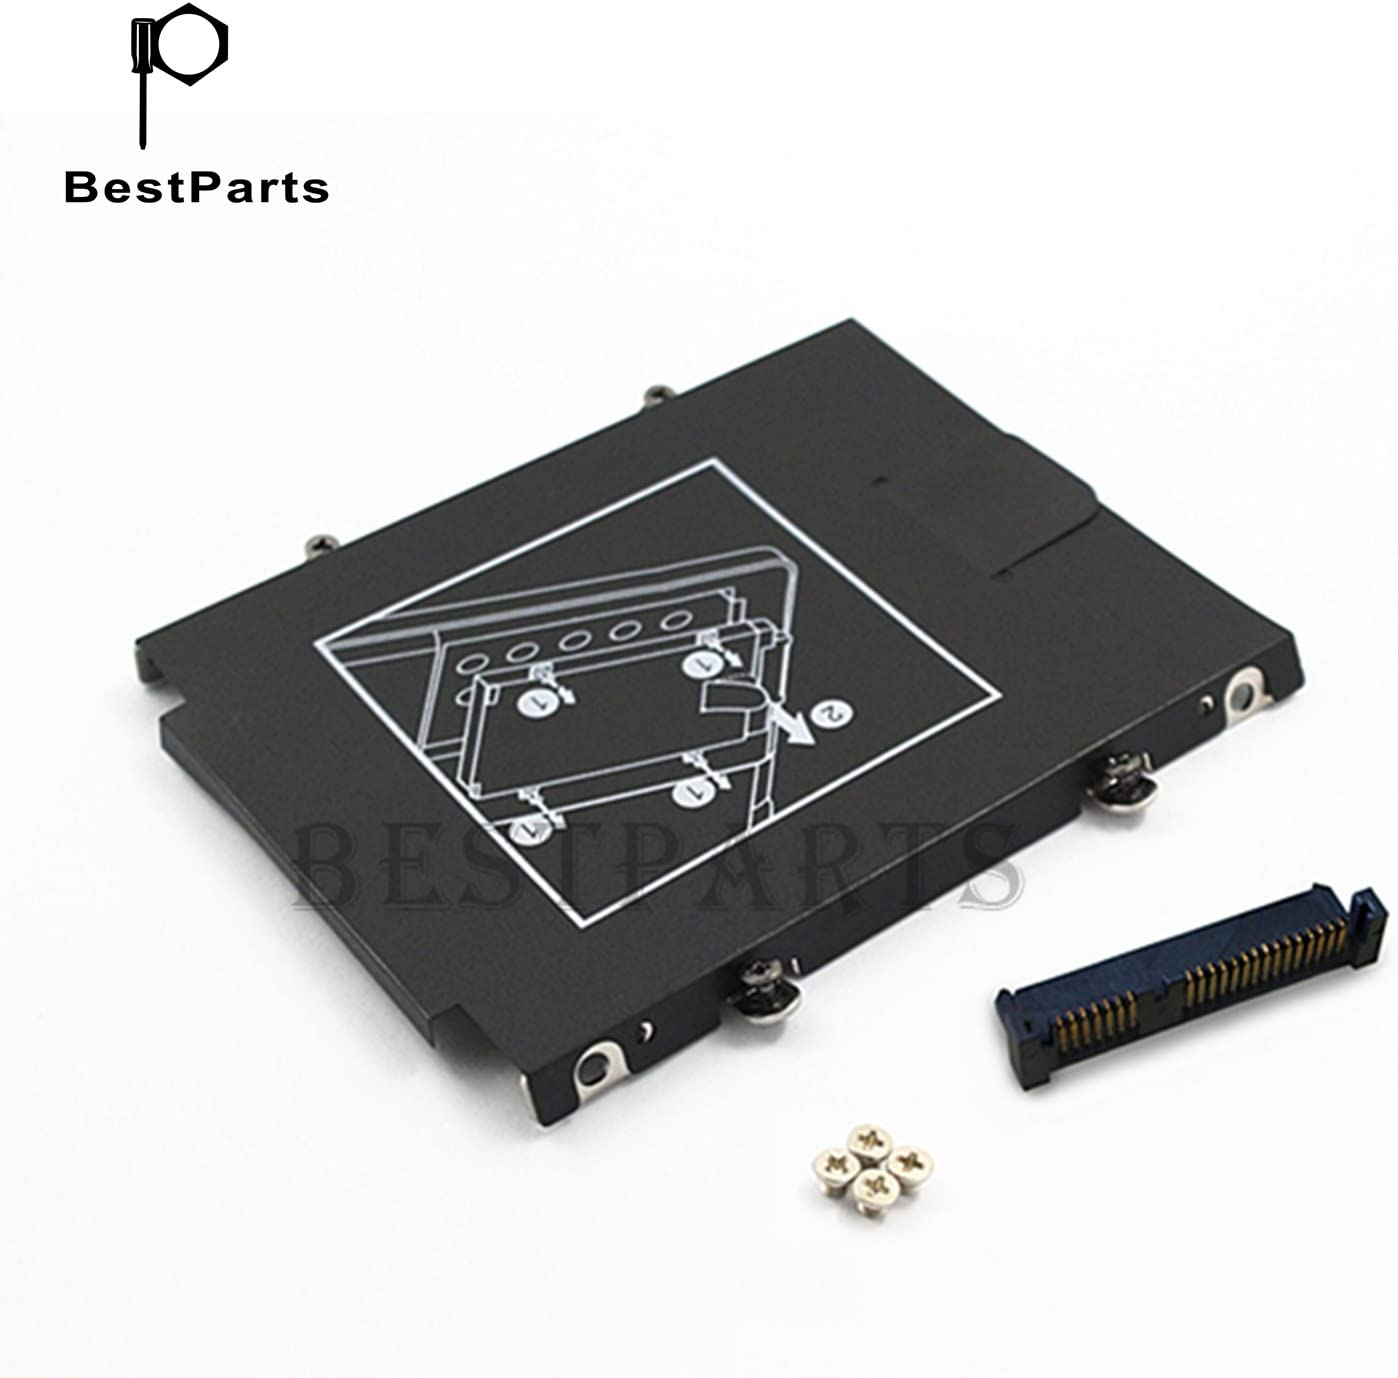 BestParts for HP EliteBook Folio 9470M 9480M Hard Drive Caddy + HDD Connector US